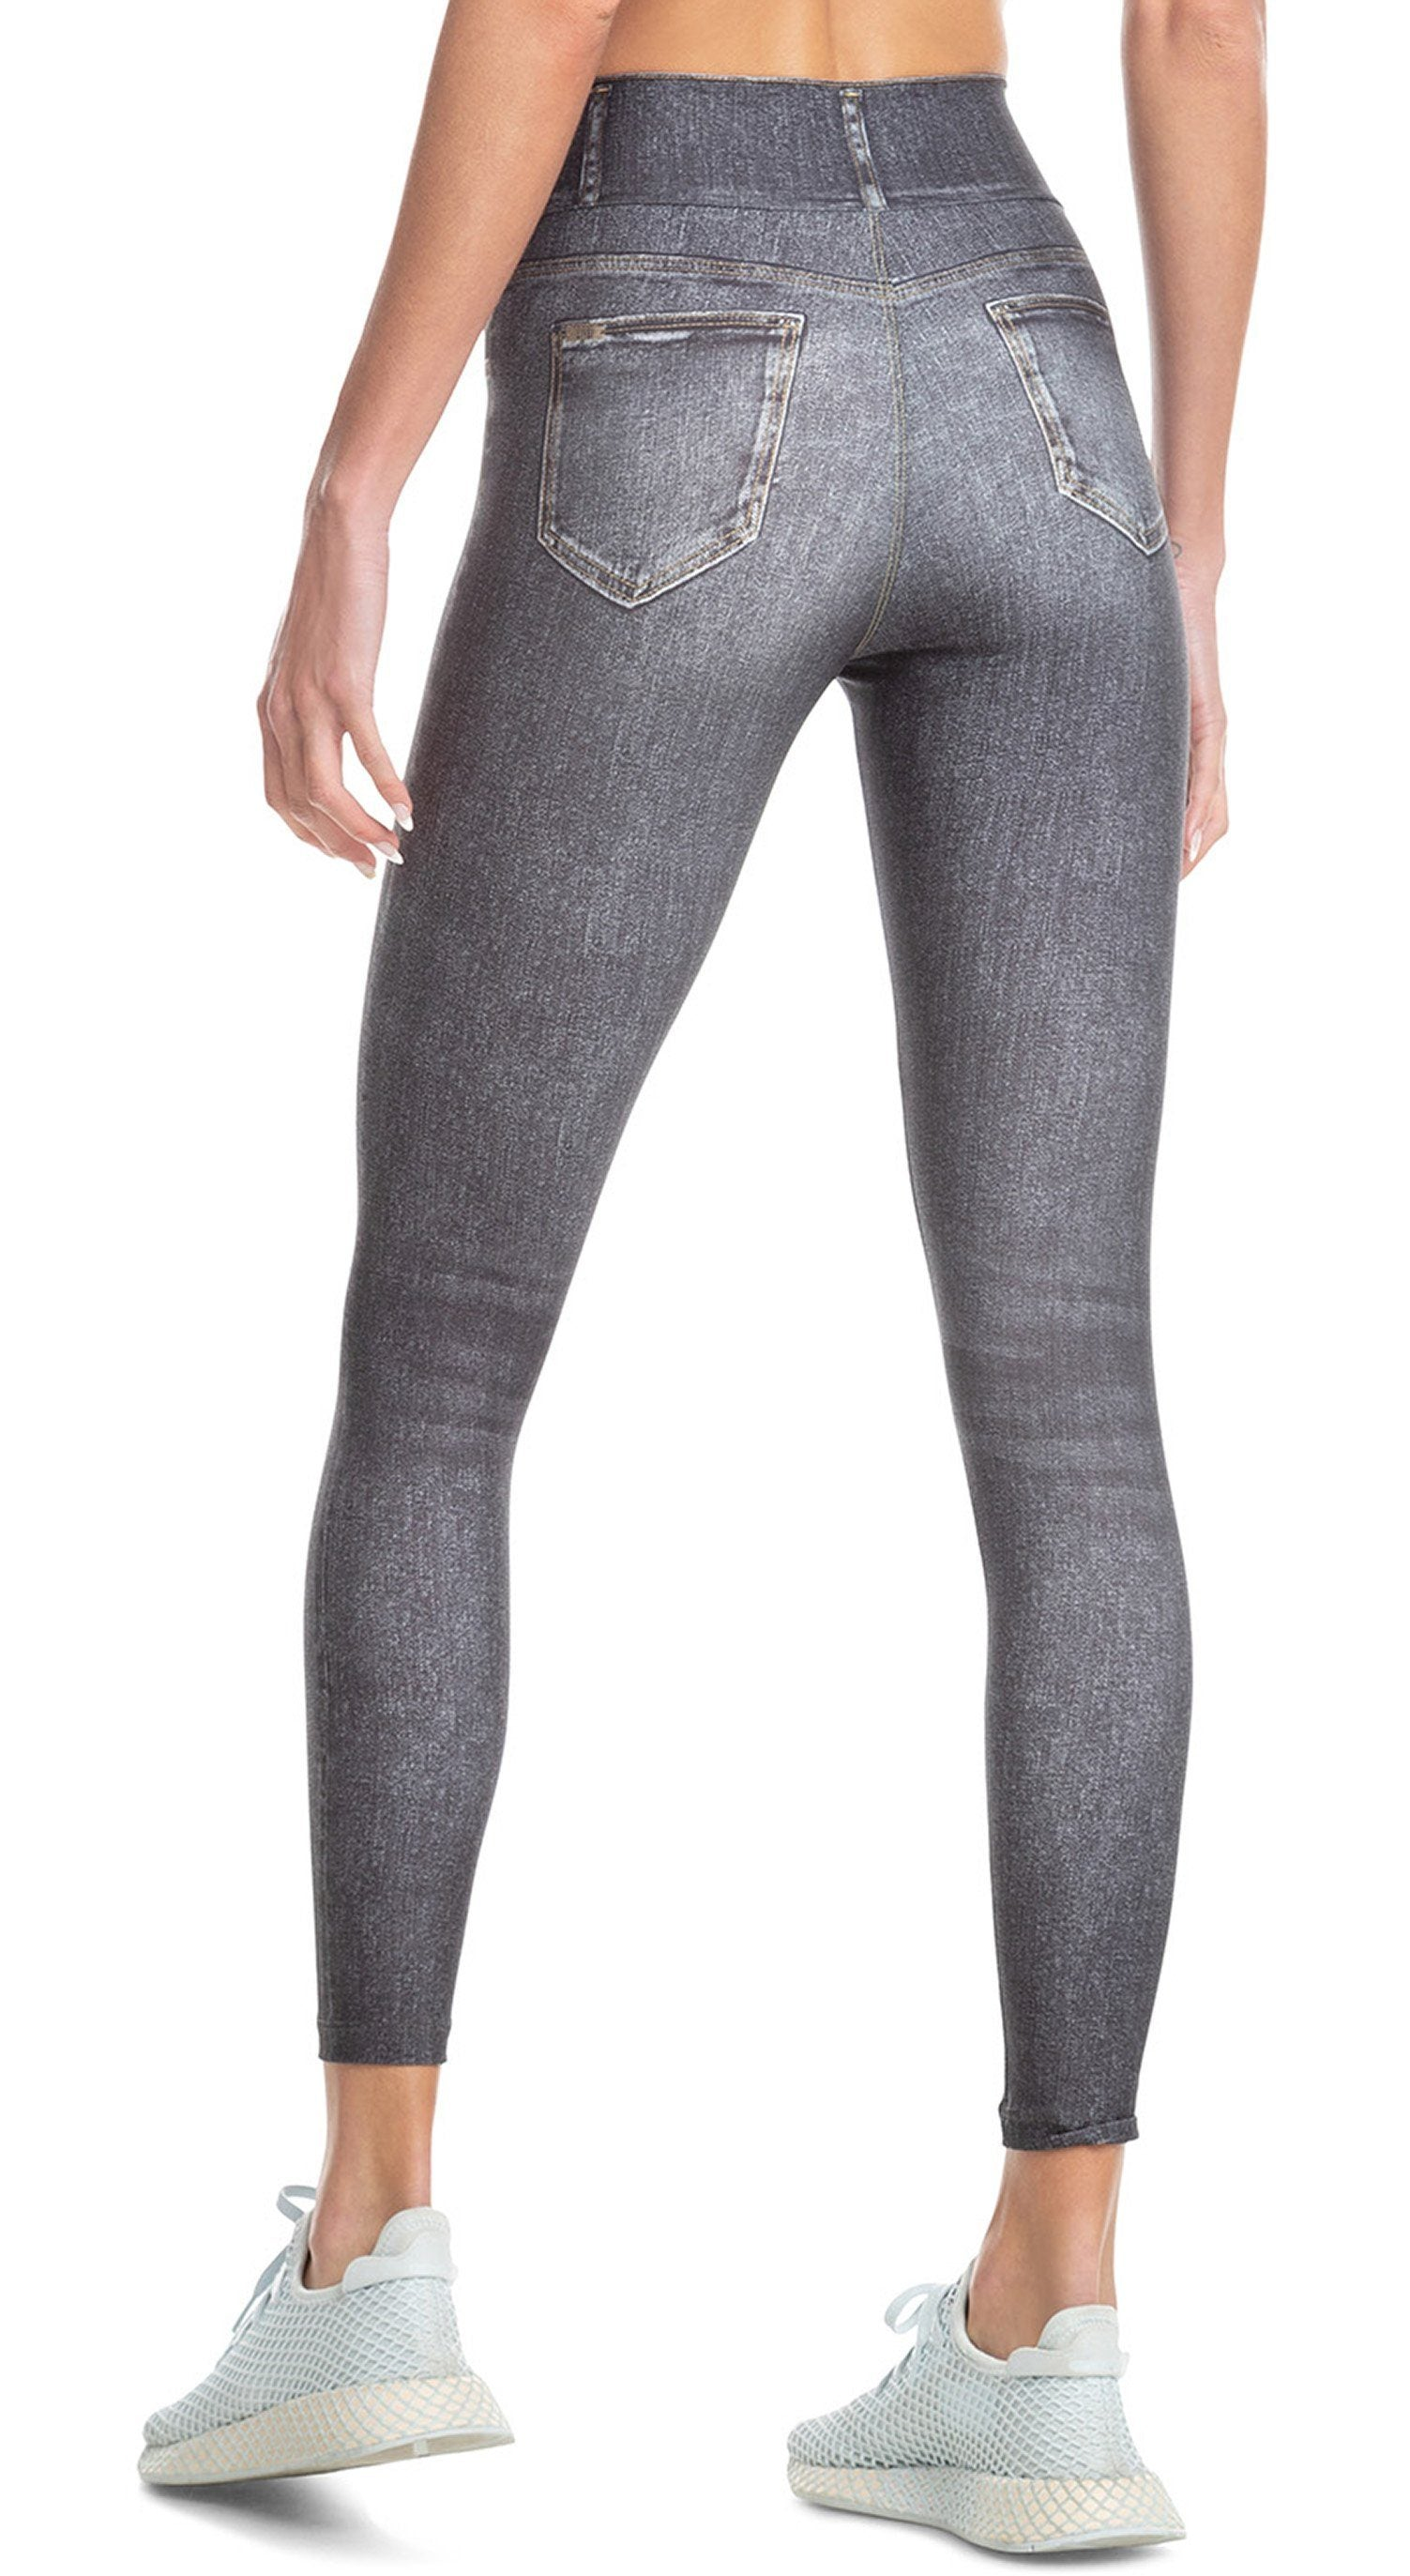 Attitude Jeans Legging - Black Effect